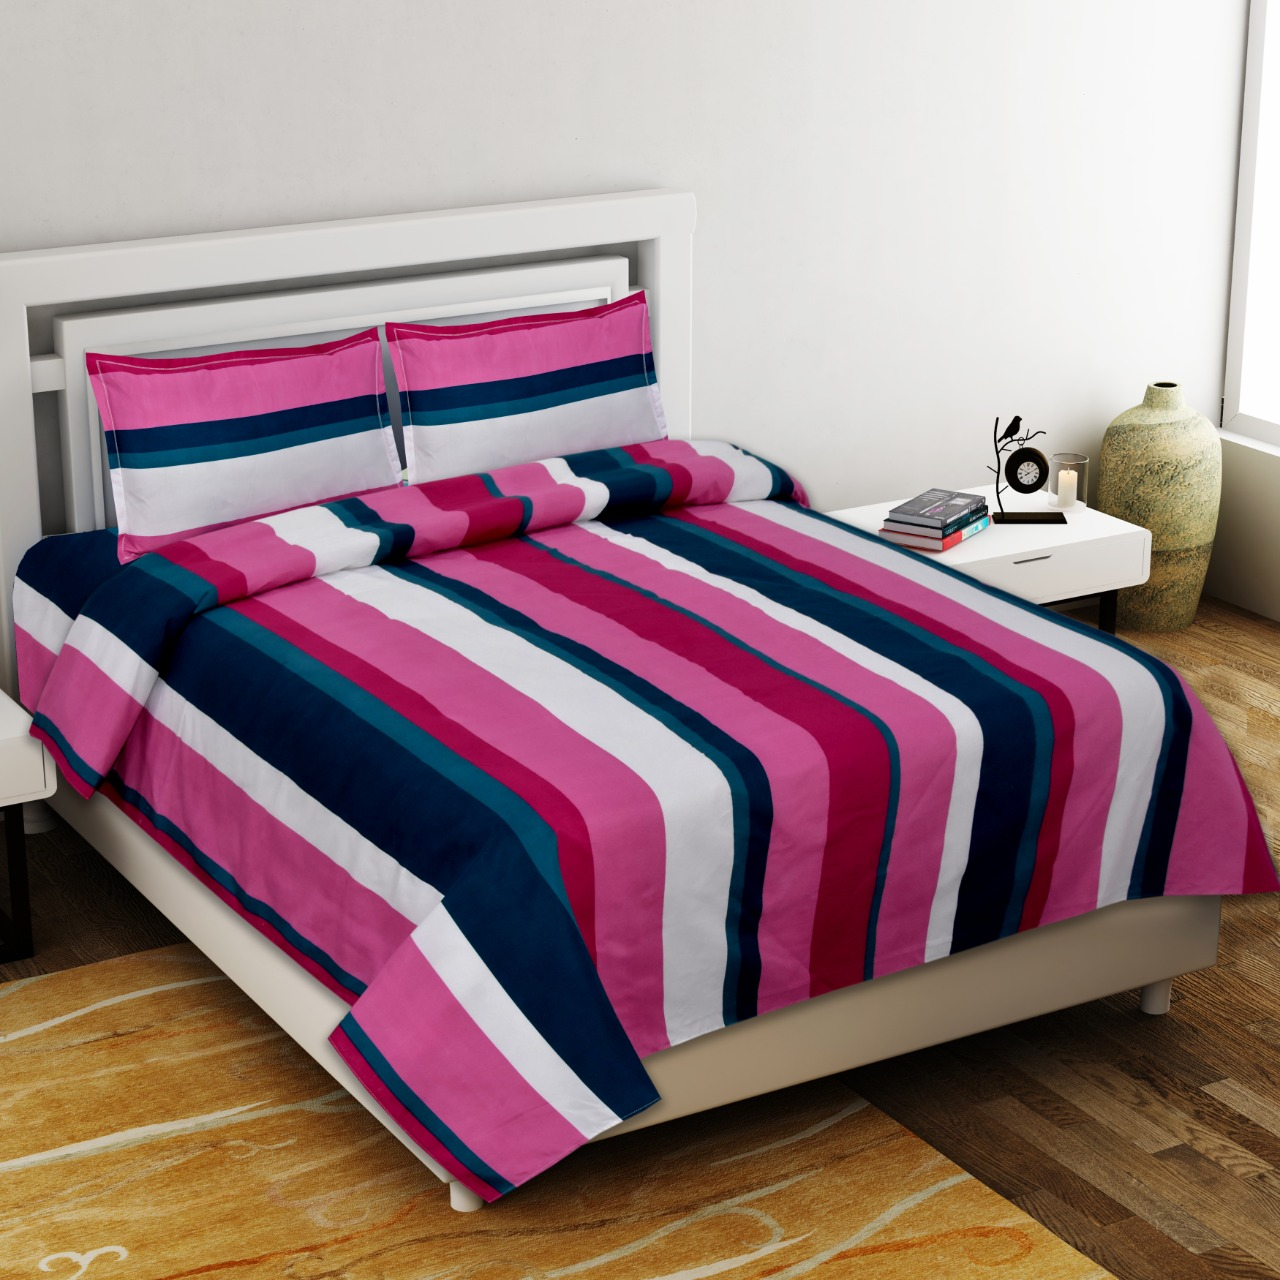 Tranquility Premium Poly Cotton Double Bedsheet